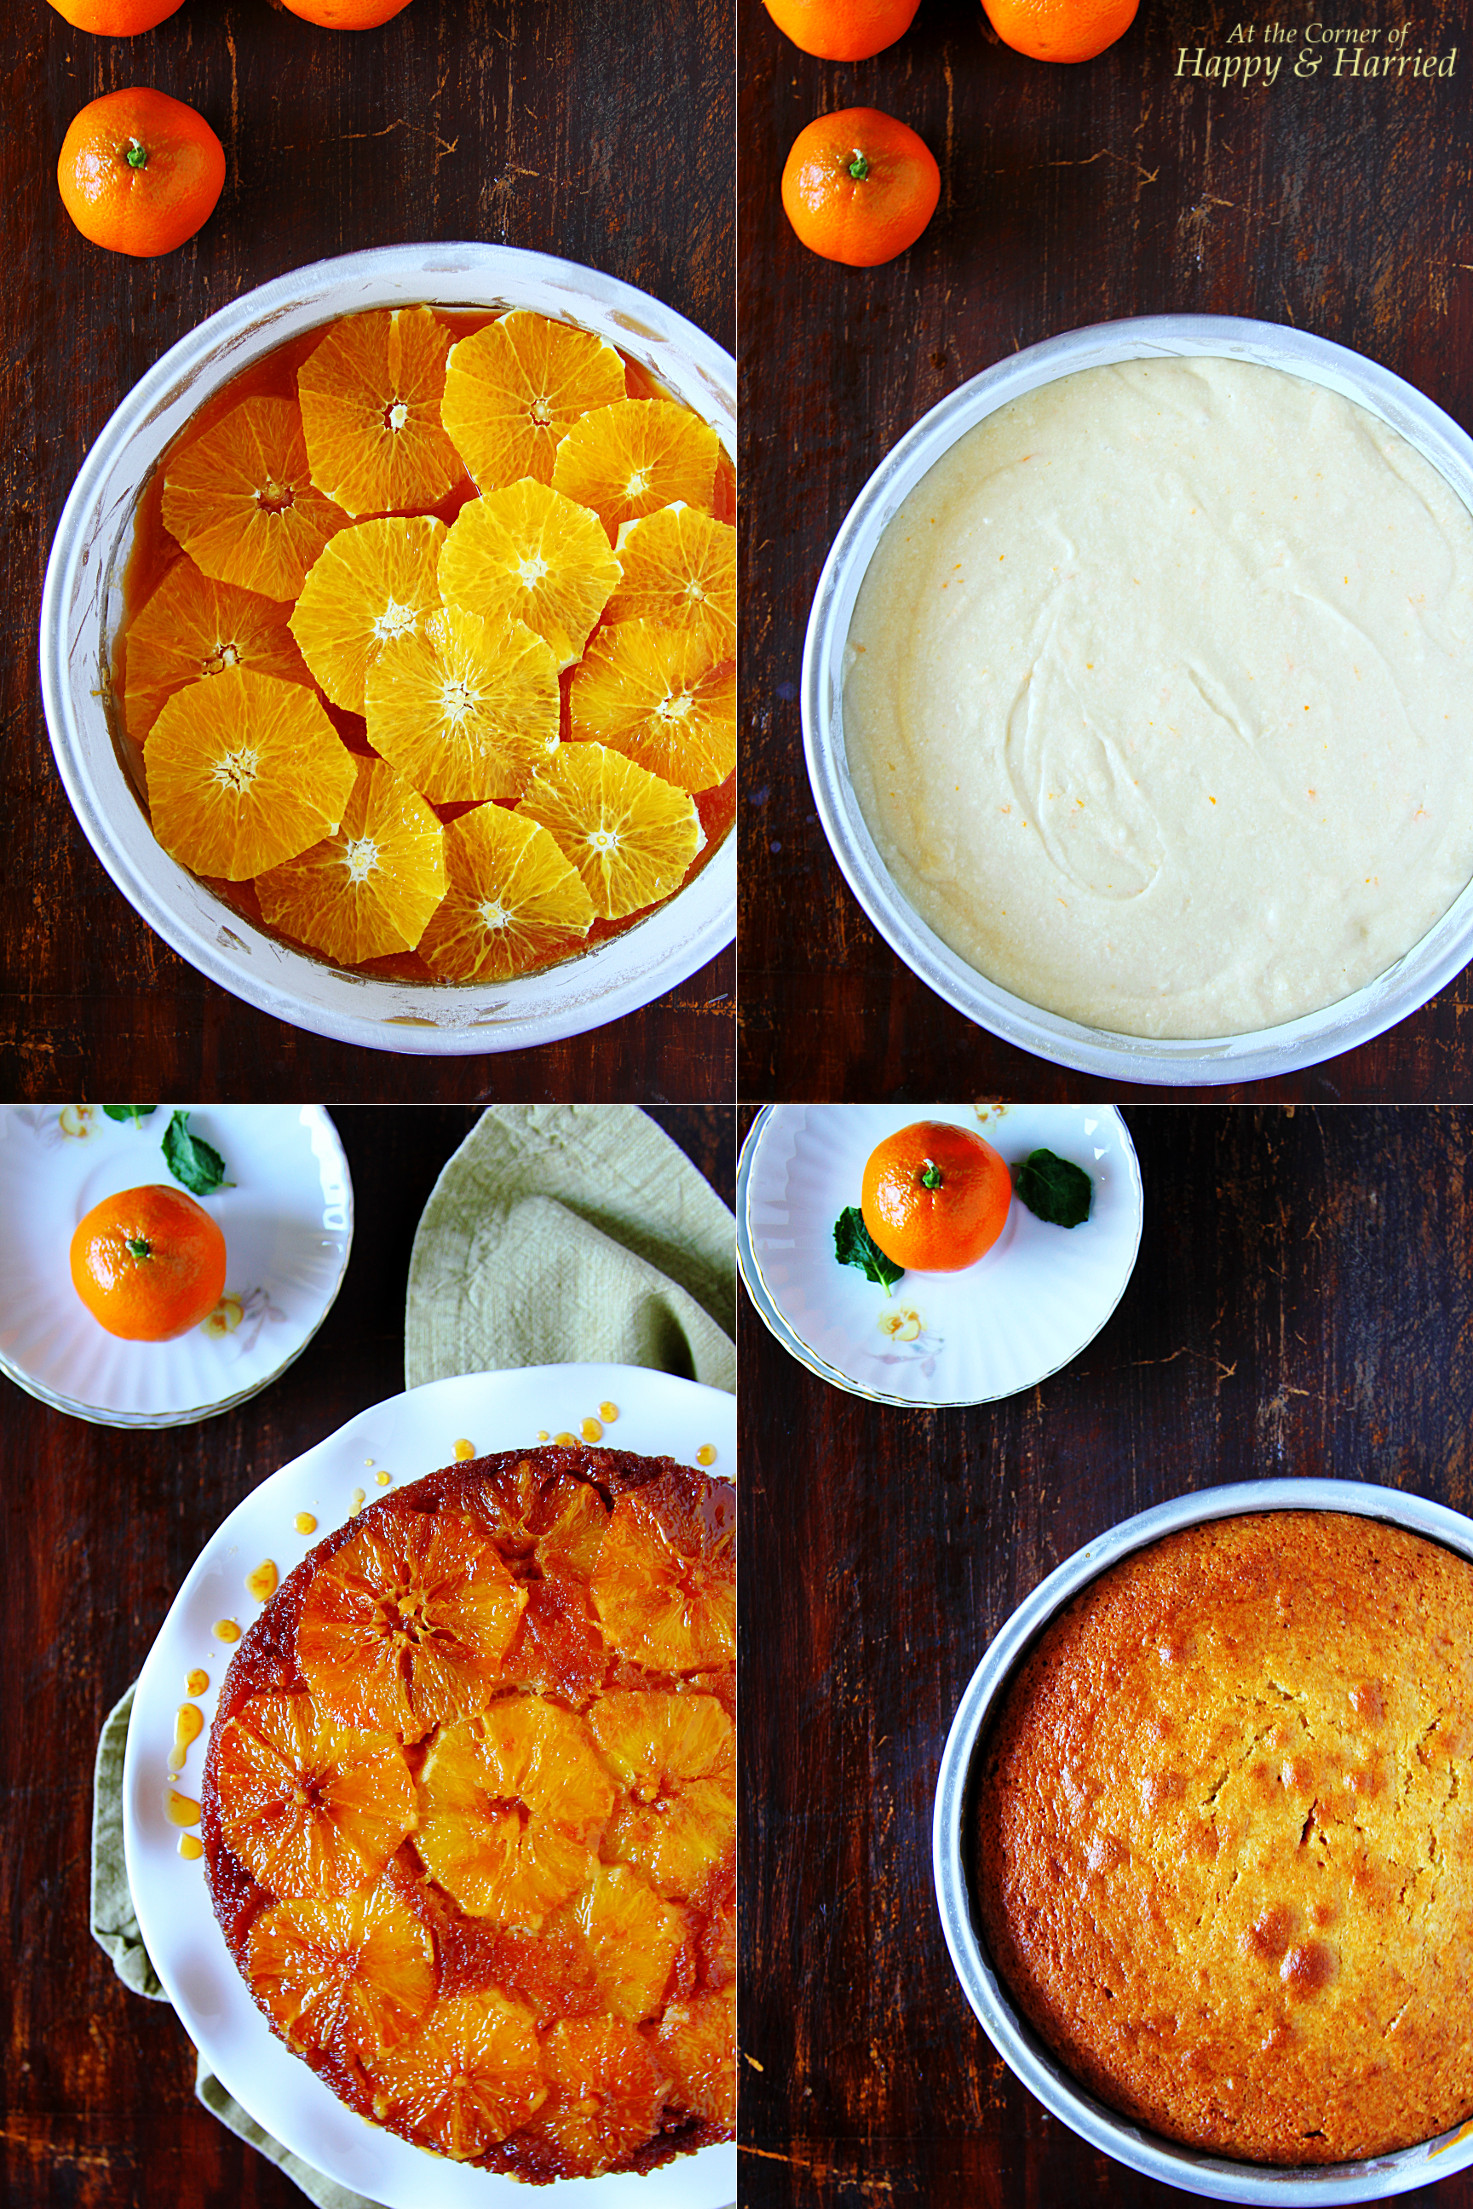 How To Make An Upside-Down Orange Cake